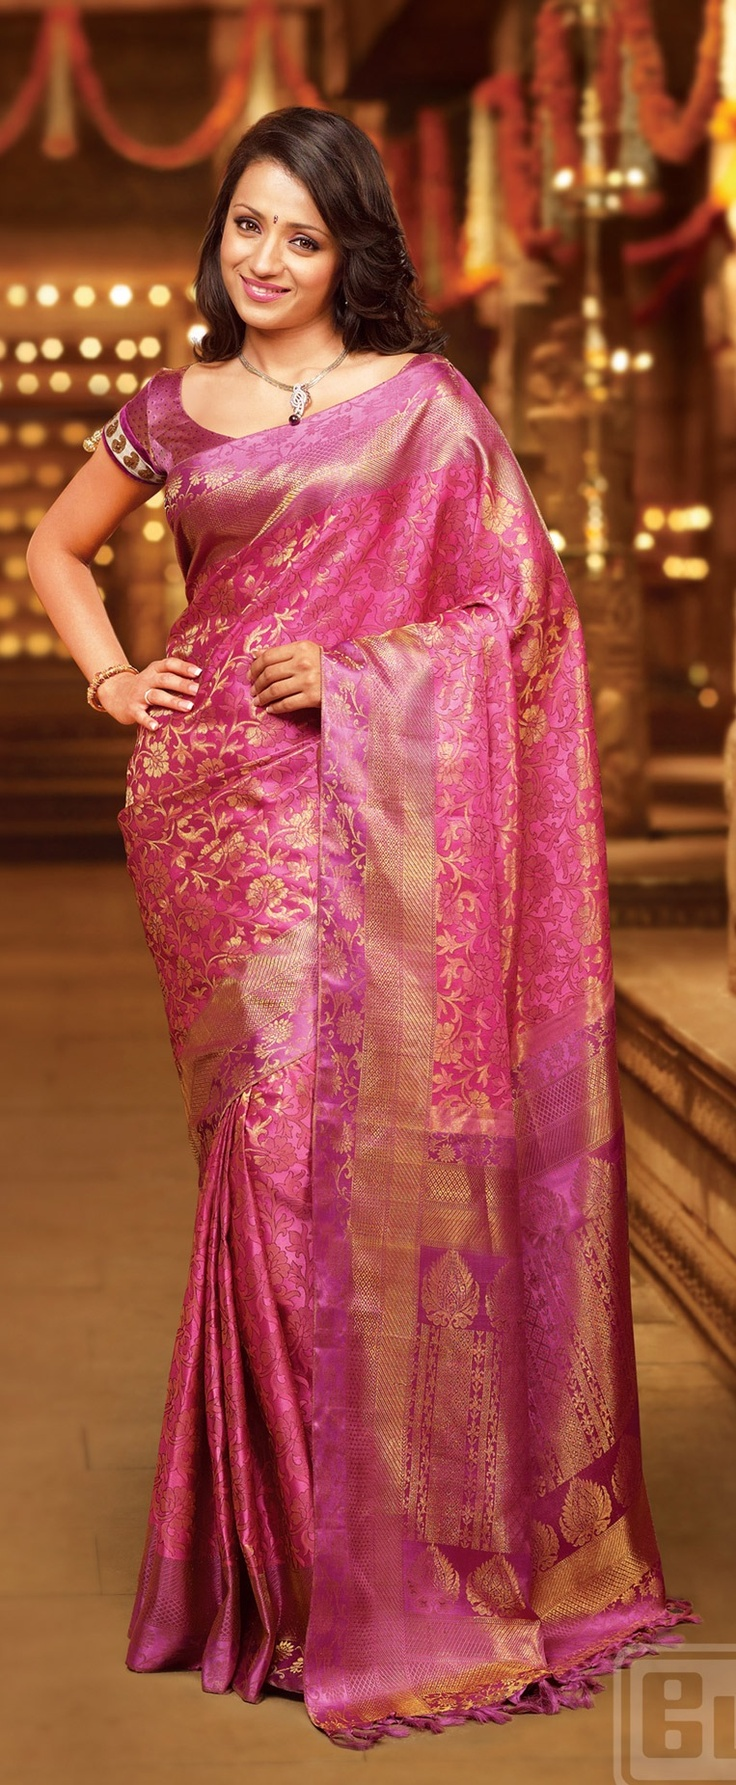 Trisha looks amazing in this samutrika pattu by pothys. I like how subtly the colours blend, creating an elegant look.